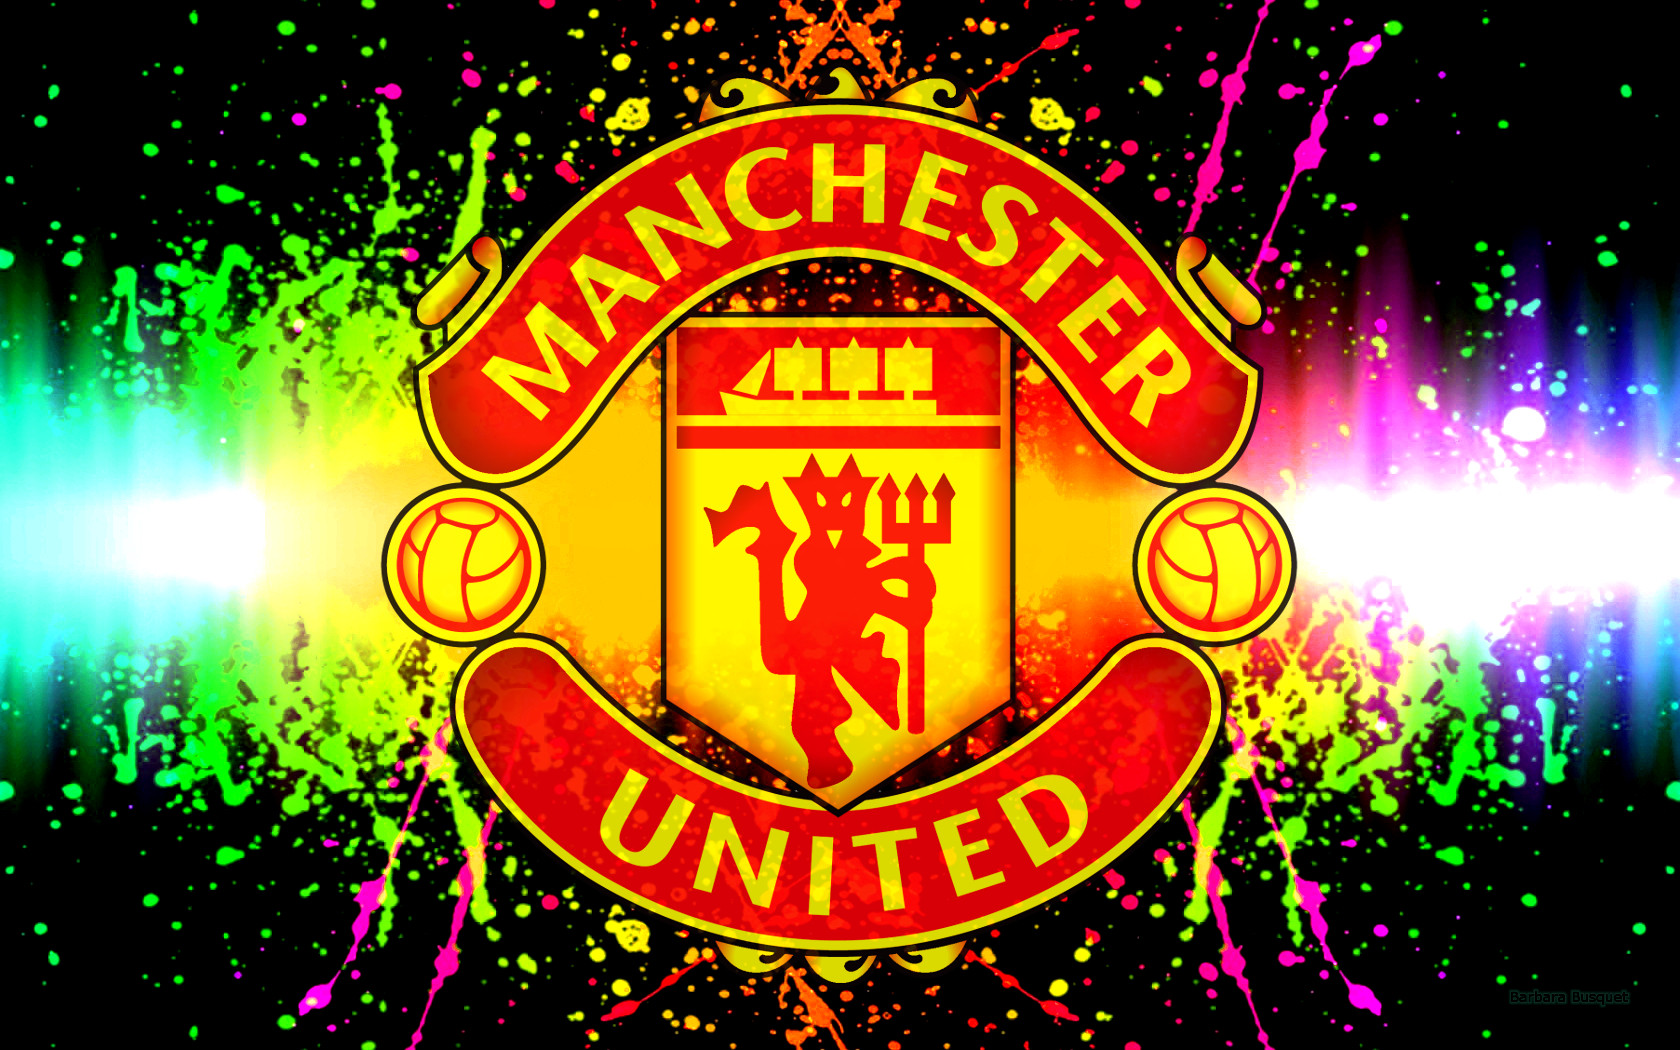 Hd wallpaper manchester united - Colorful Manchester United Football Club Wallpaper